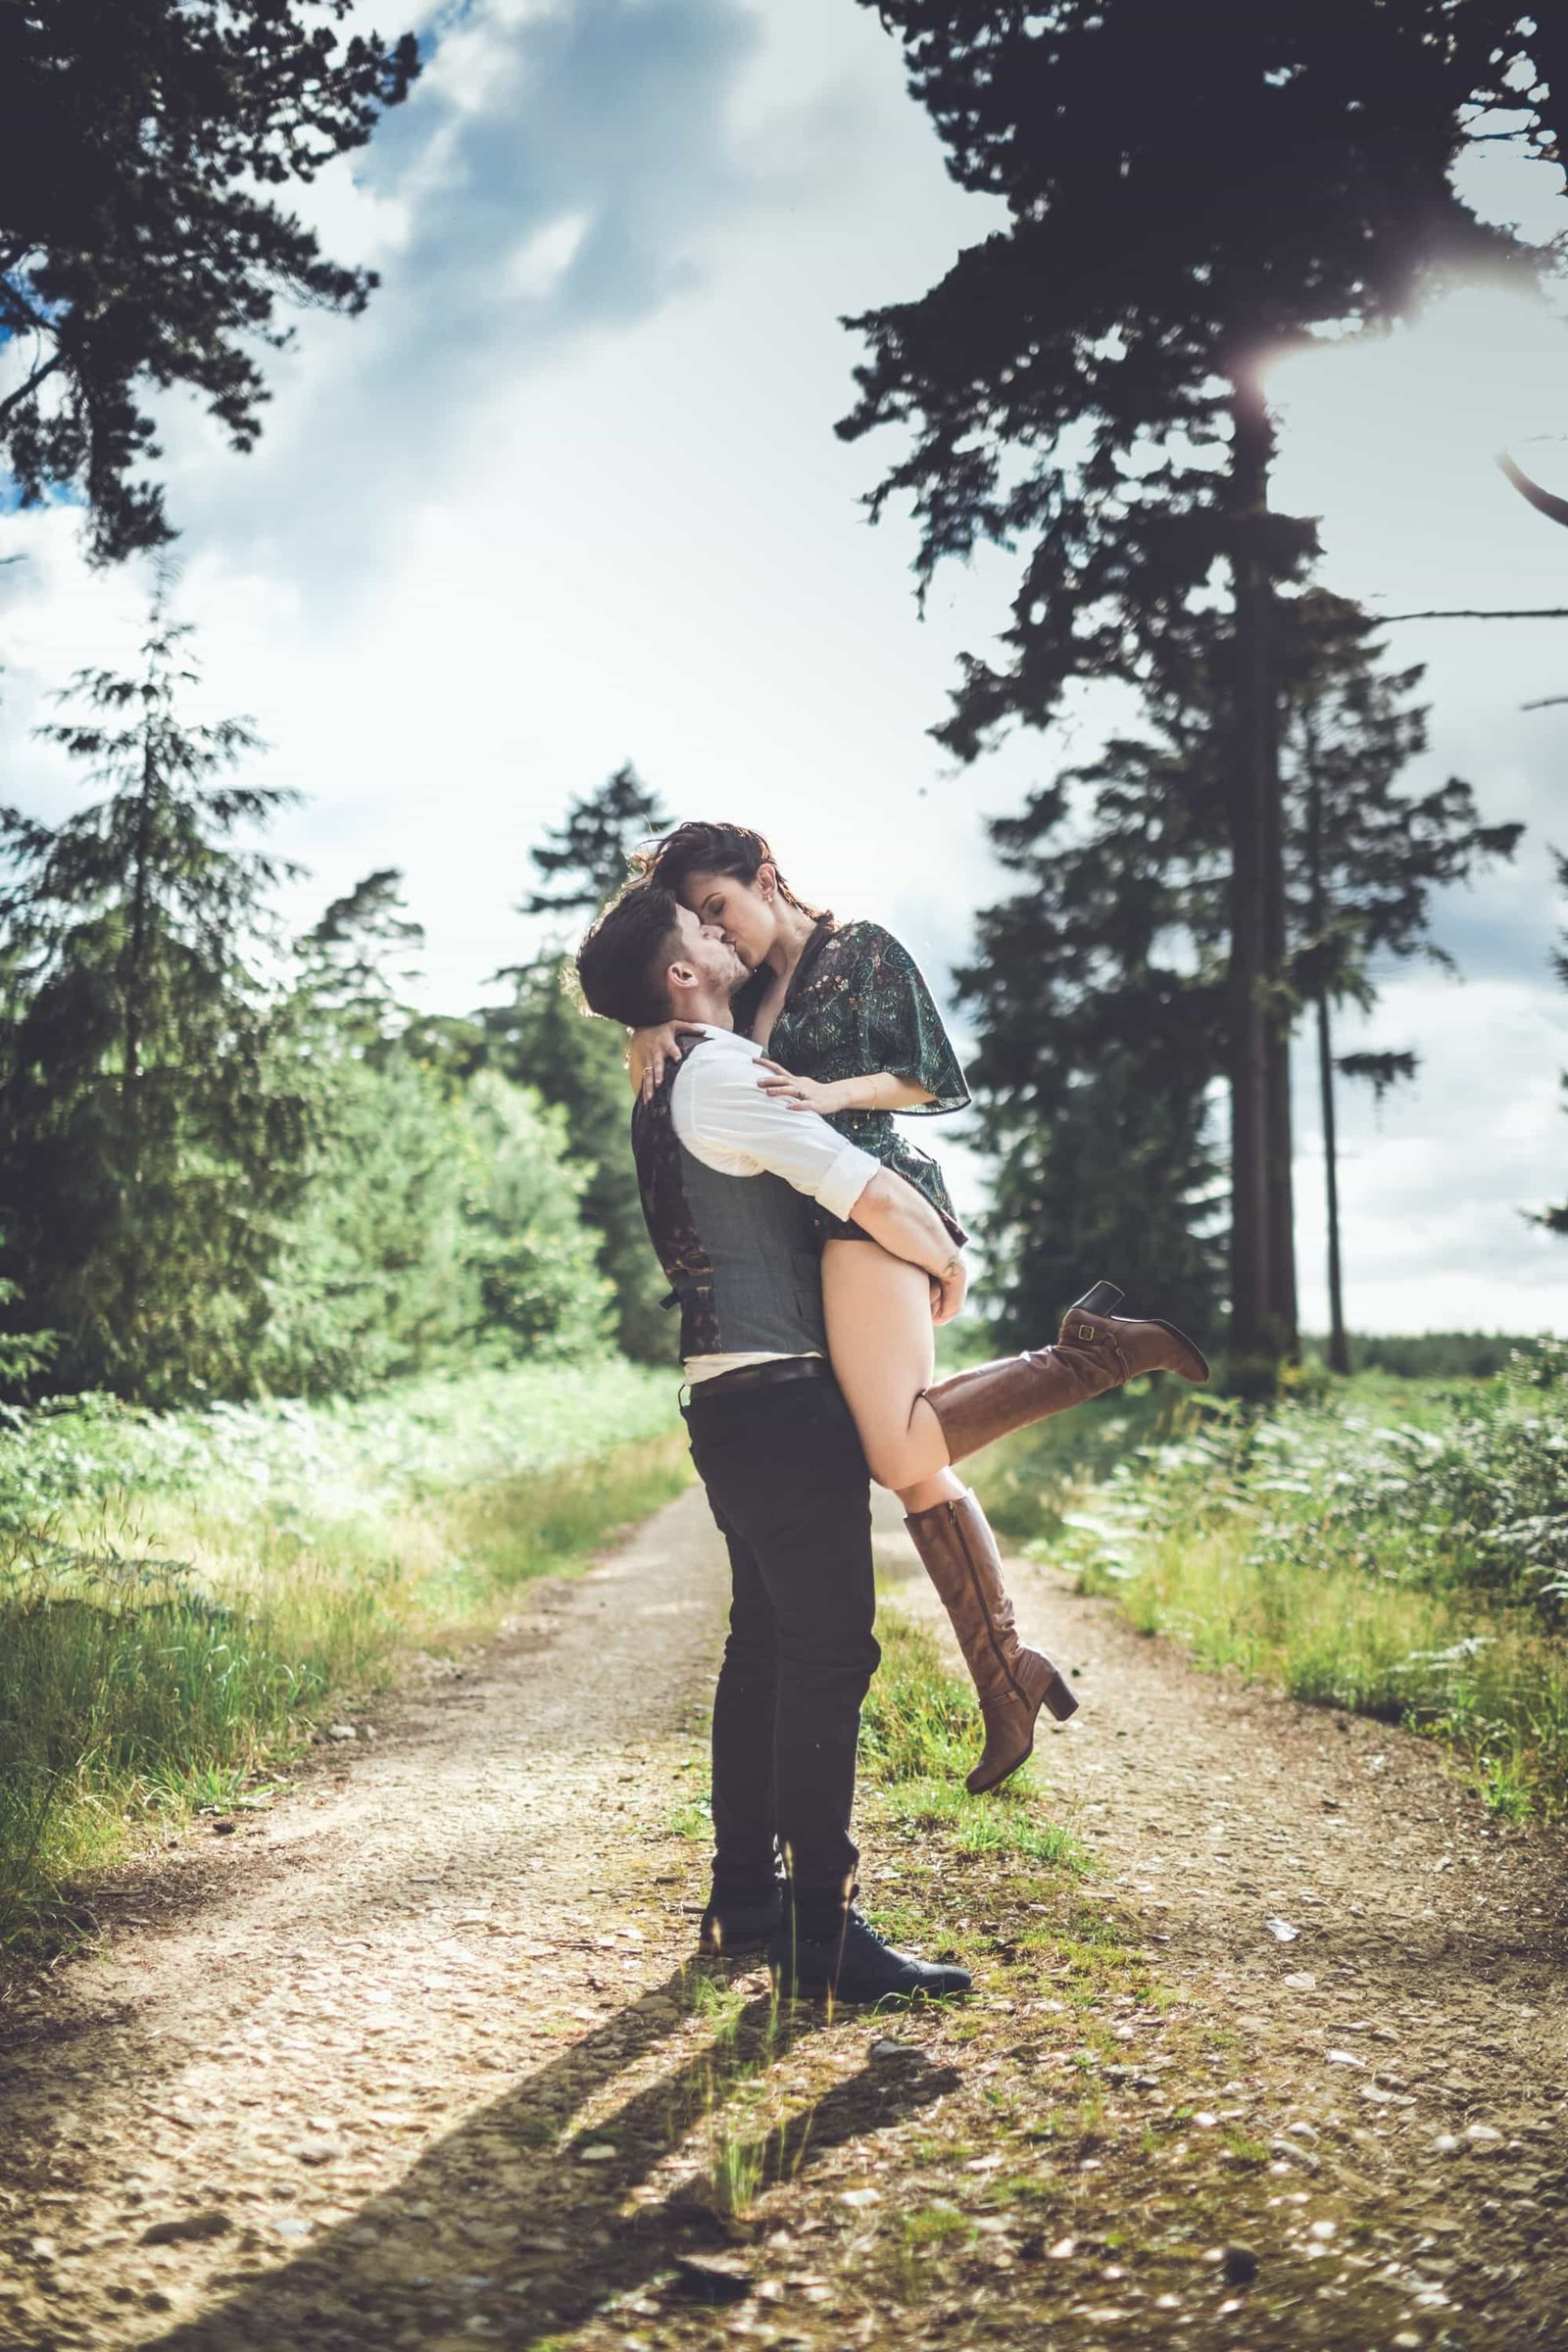 An engaged man lifts his future bride into the air on a gravel path at Bacton forest in Norfolk and they kiss.